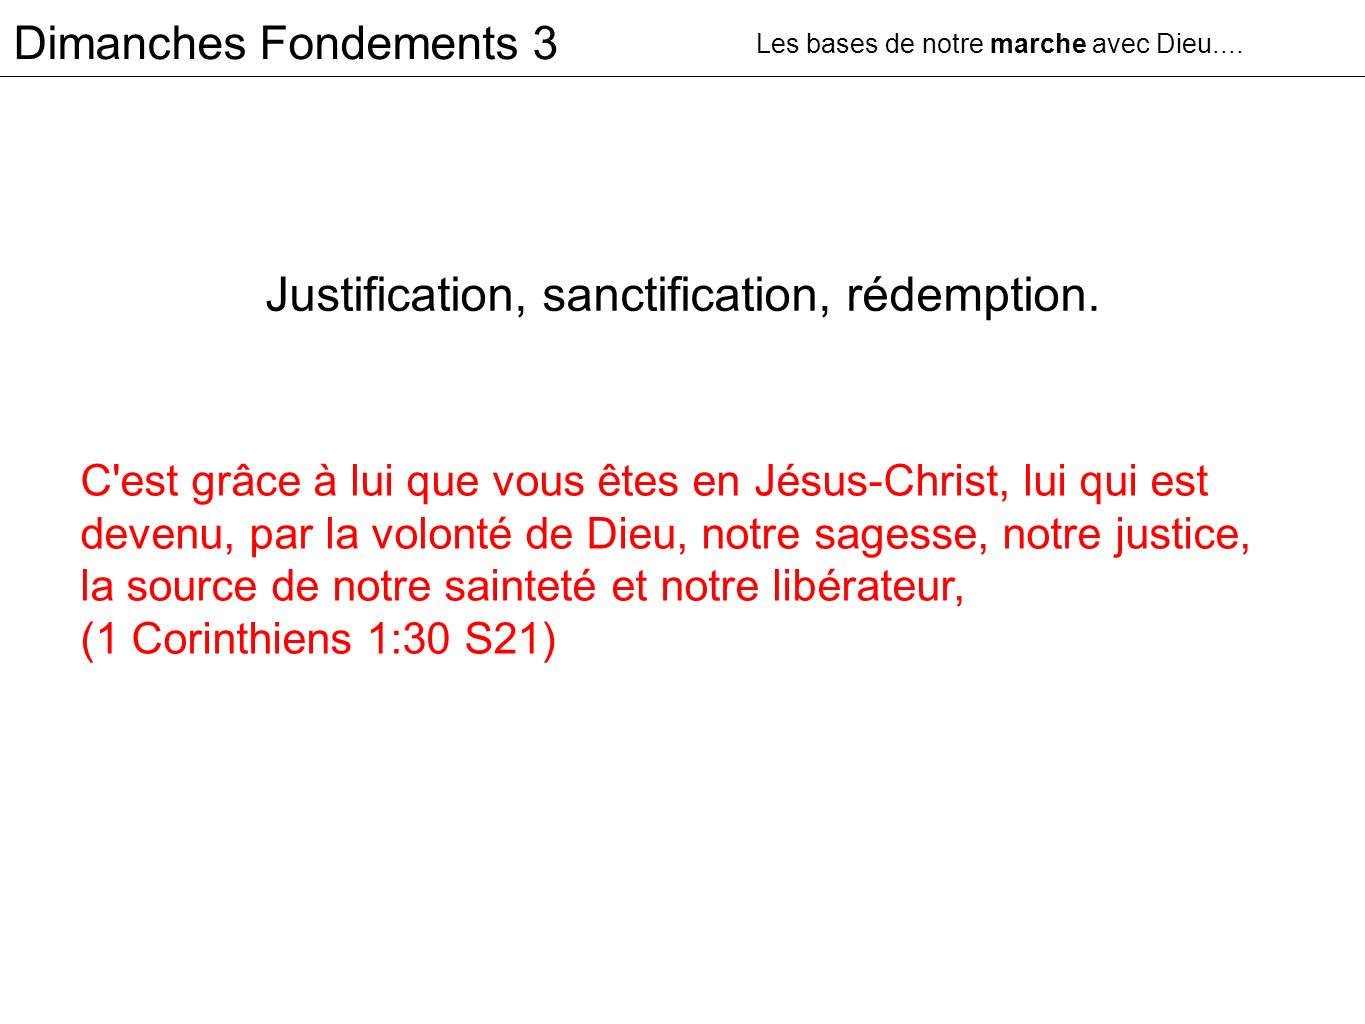 Justification, sanctification, rédemption.